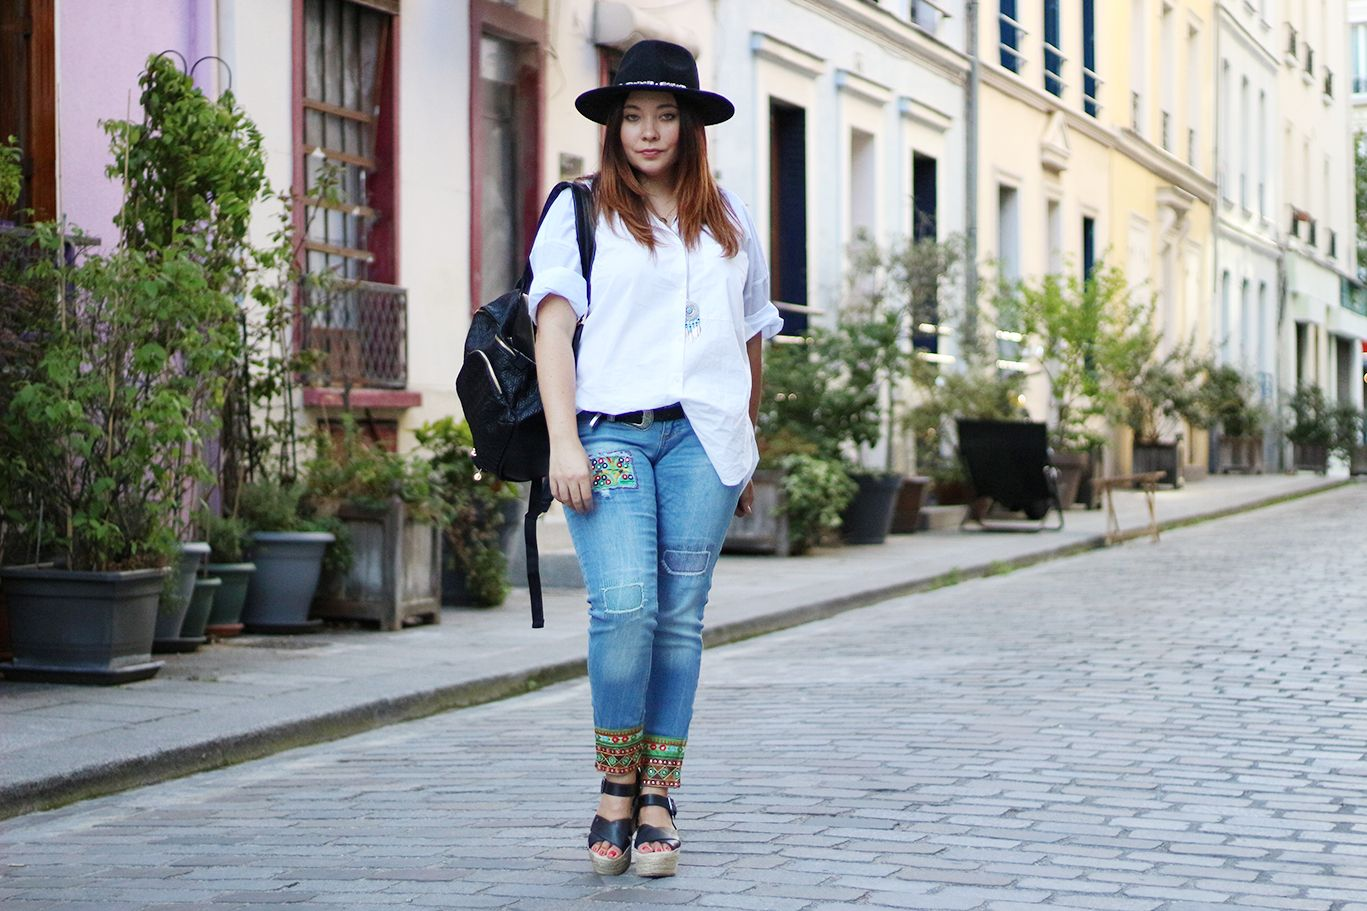 desigual, rue cremieux, colorful look, jean desigual, chemise zara, zara, jennyfer, sac desigual, sac à dos femme, chaussures pull and bear, asos, chapeau asos, panama, blogueuse mode, blogger